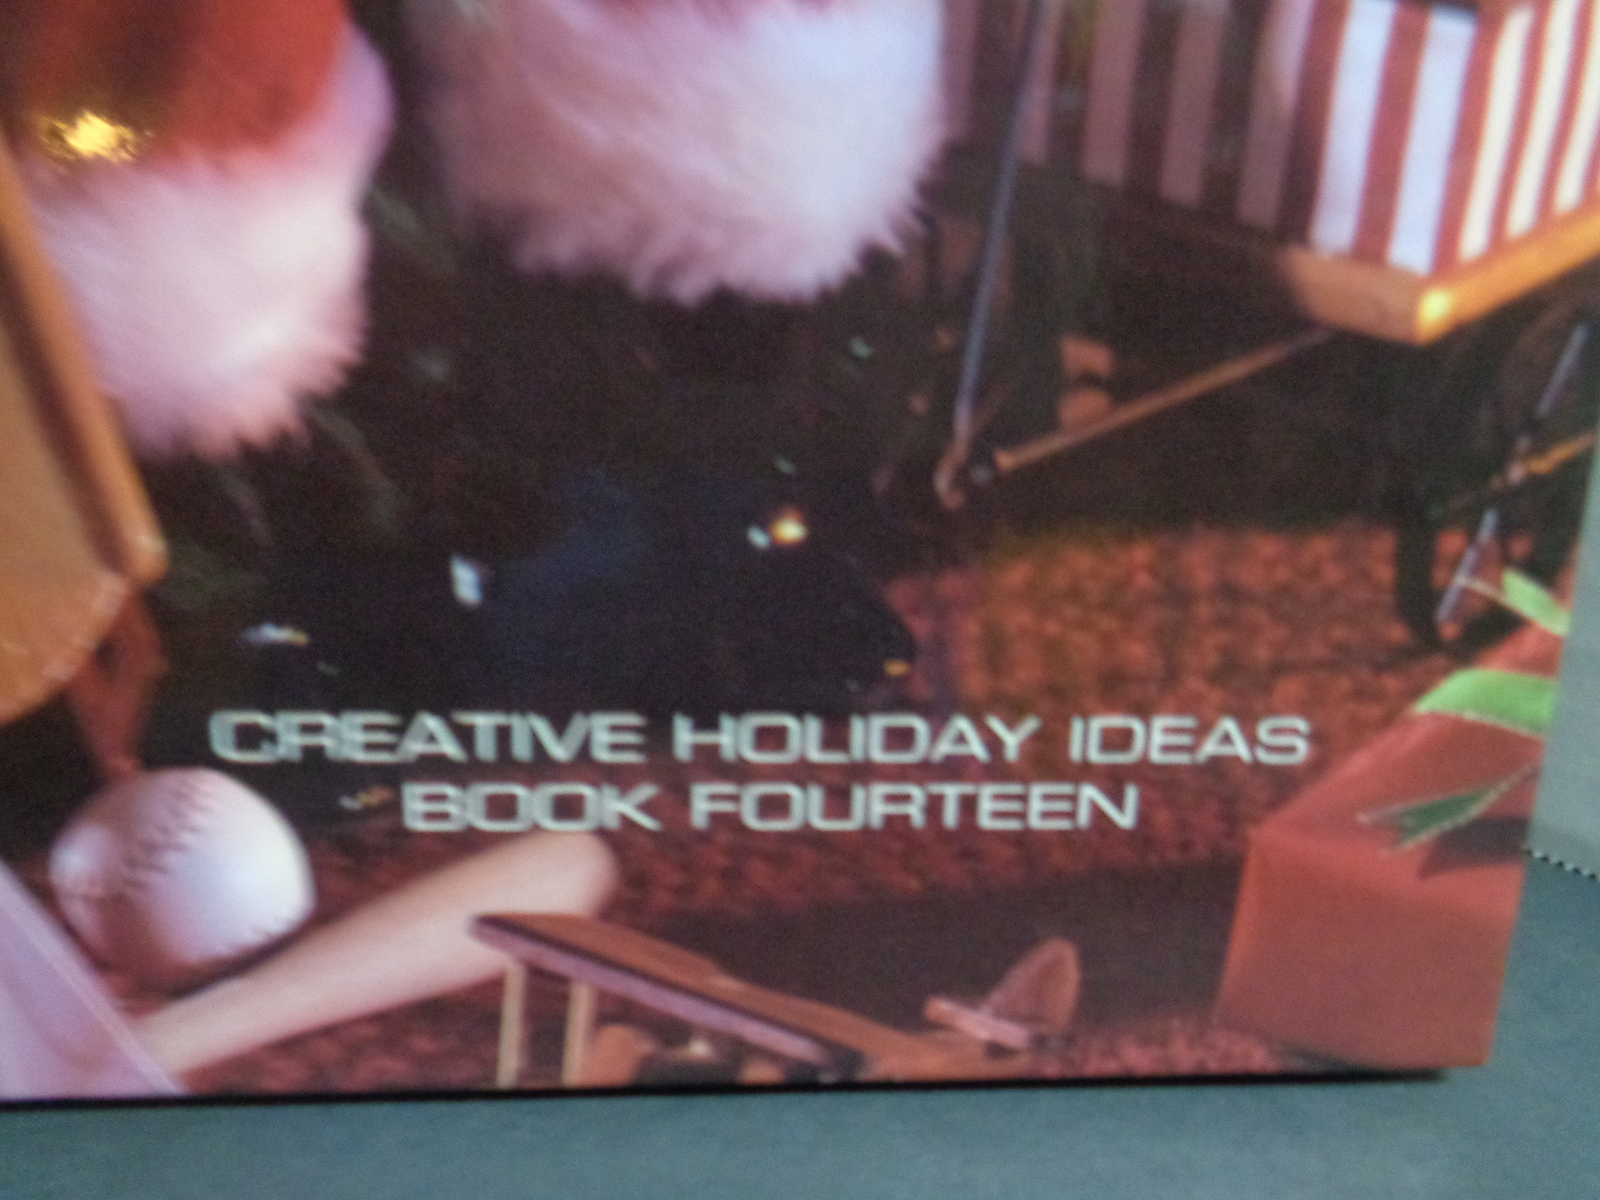 The Spirit of Christmas Creative Holiday Ideas Set of 3 Books by Leisure Arts